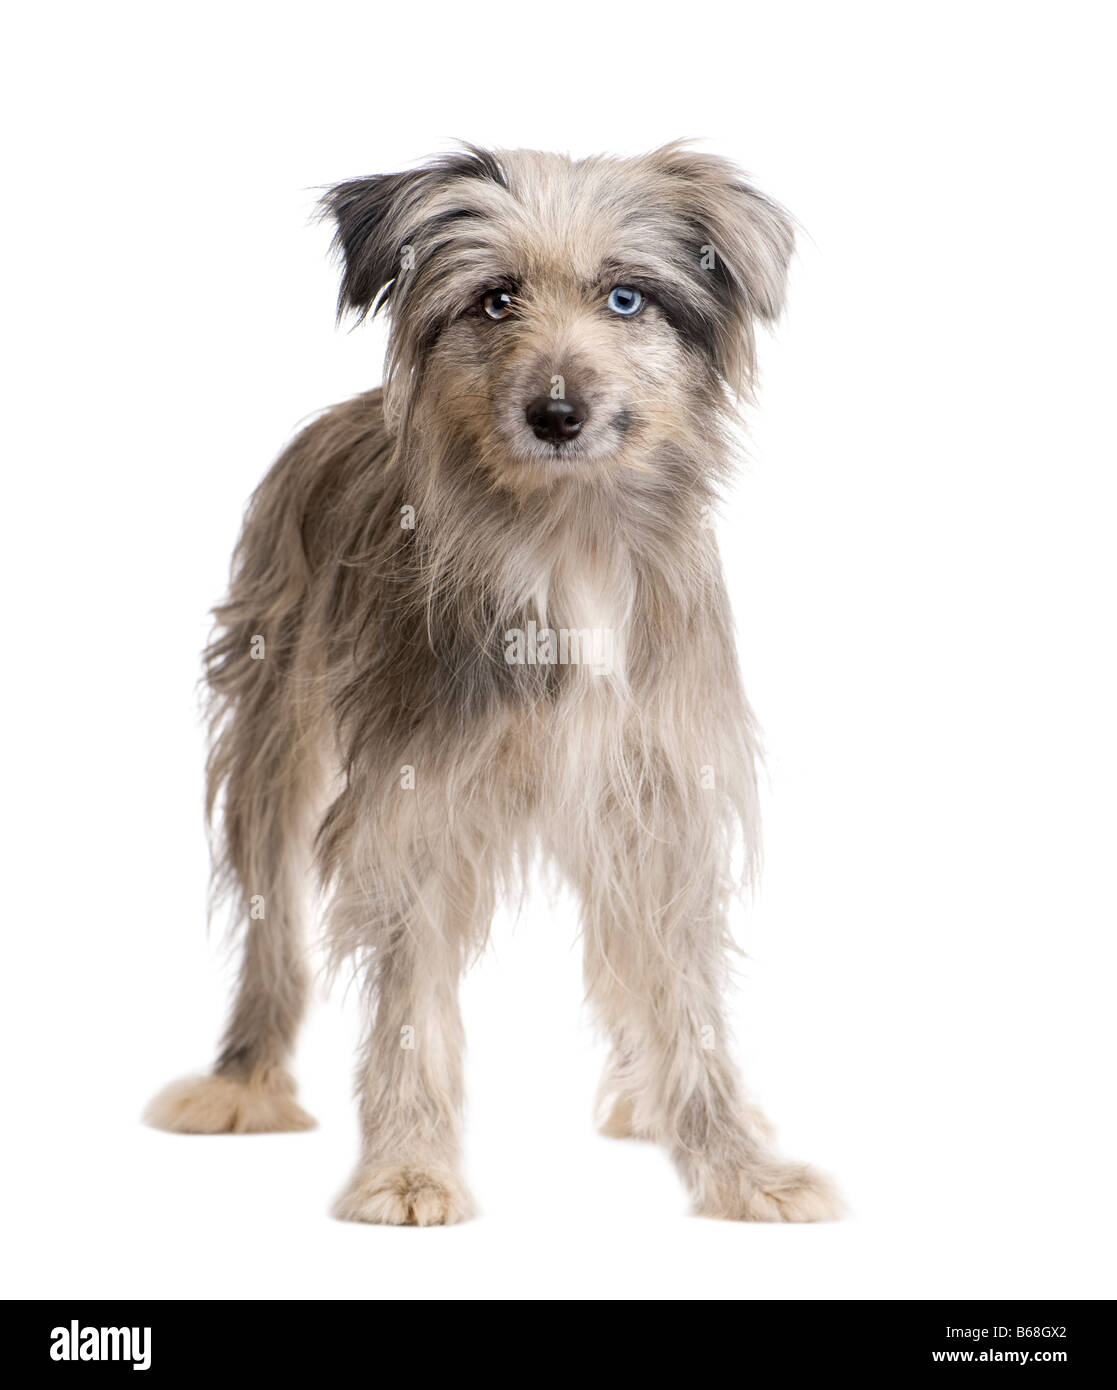 Pyrenean Shepherd 1 year in front of a white background - Stock Image